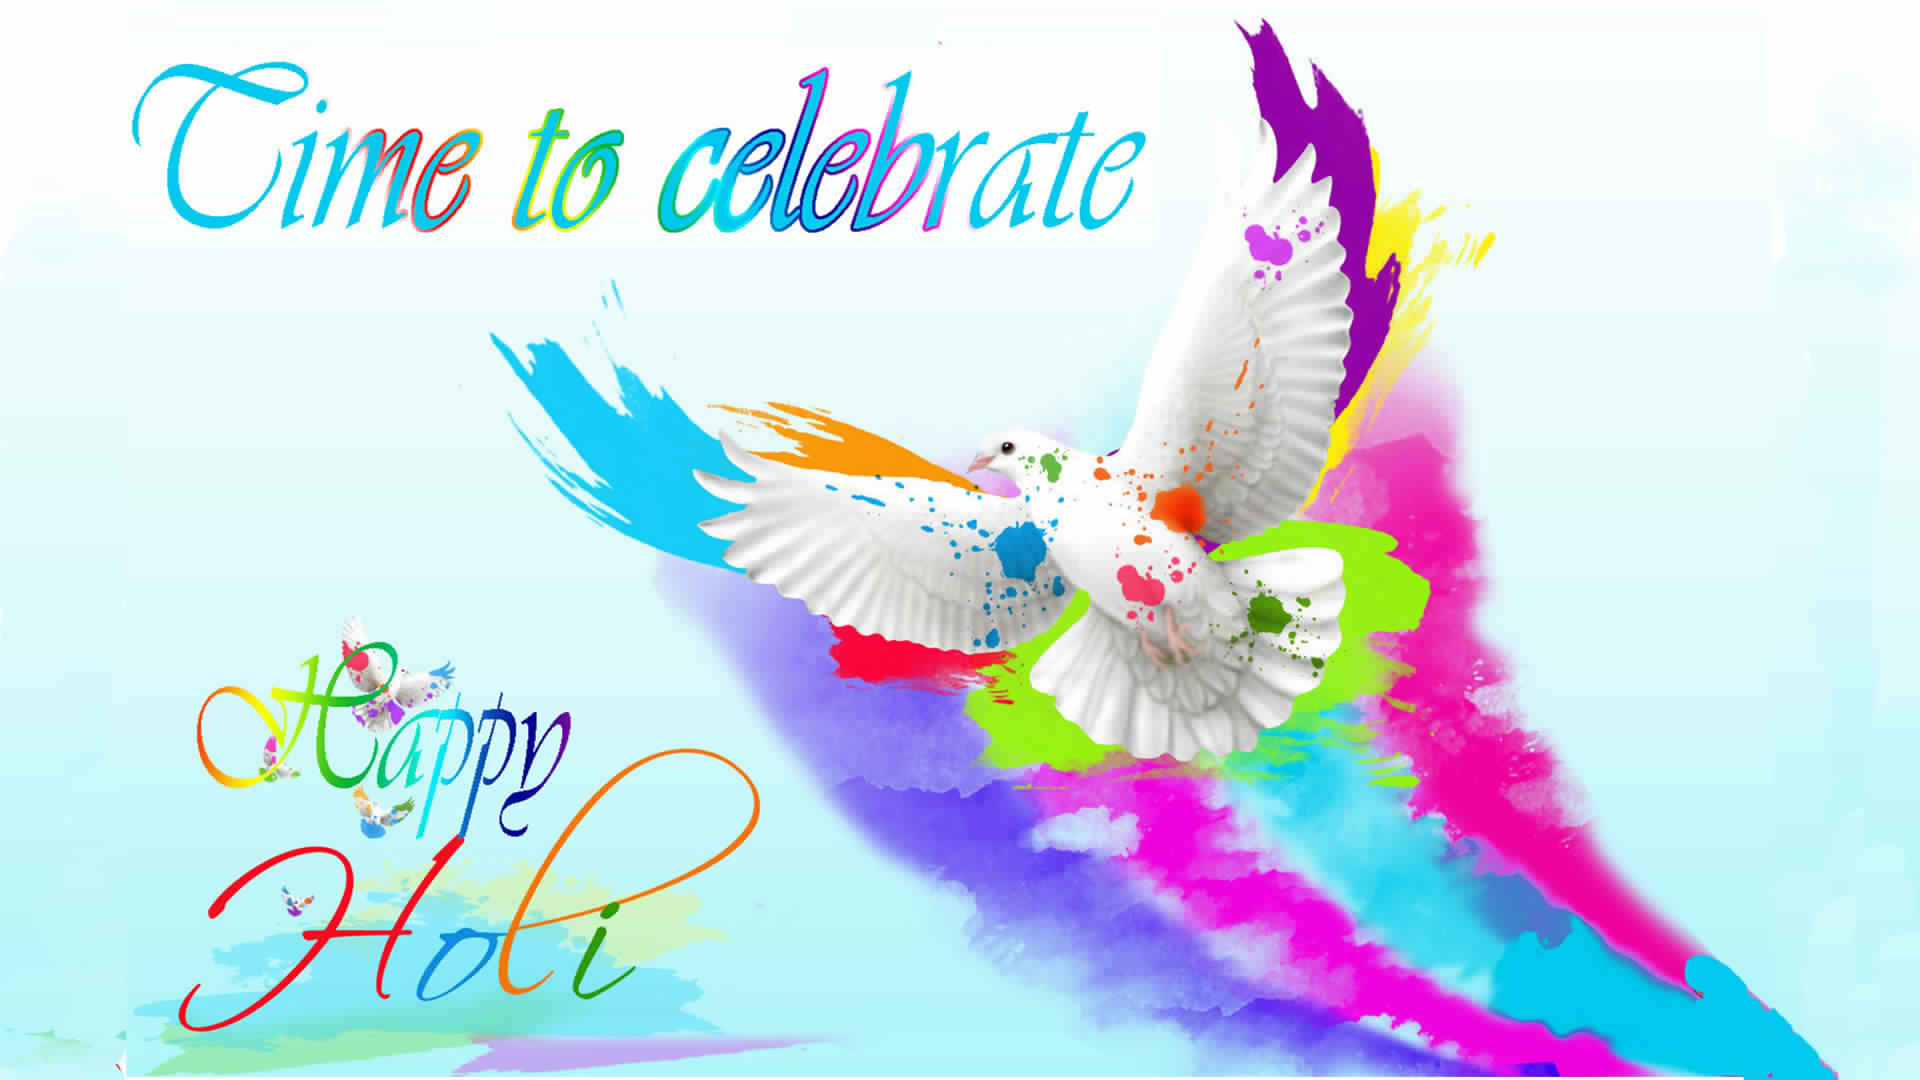 Happy Holi Dhuledi 2019 Hd Colorfull Wallpaper Facebook Whatsapp Image